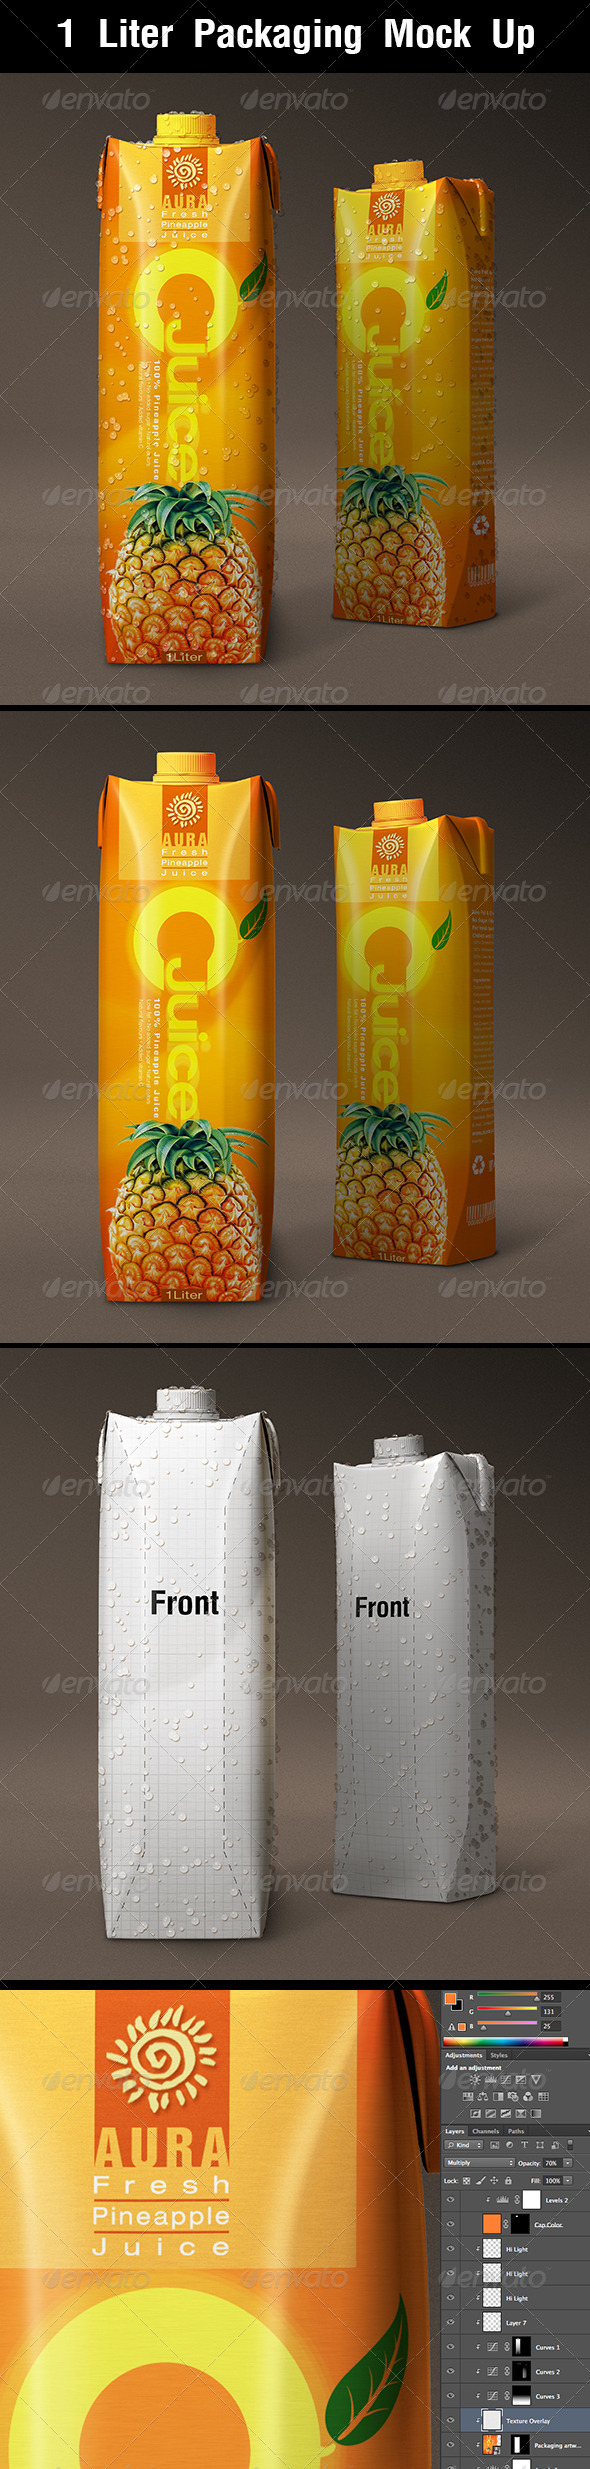 1 Liter Carton Packaging Mock Up - Food and Drink Packaging